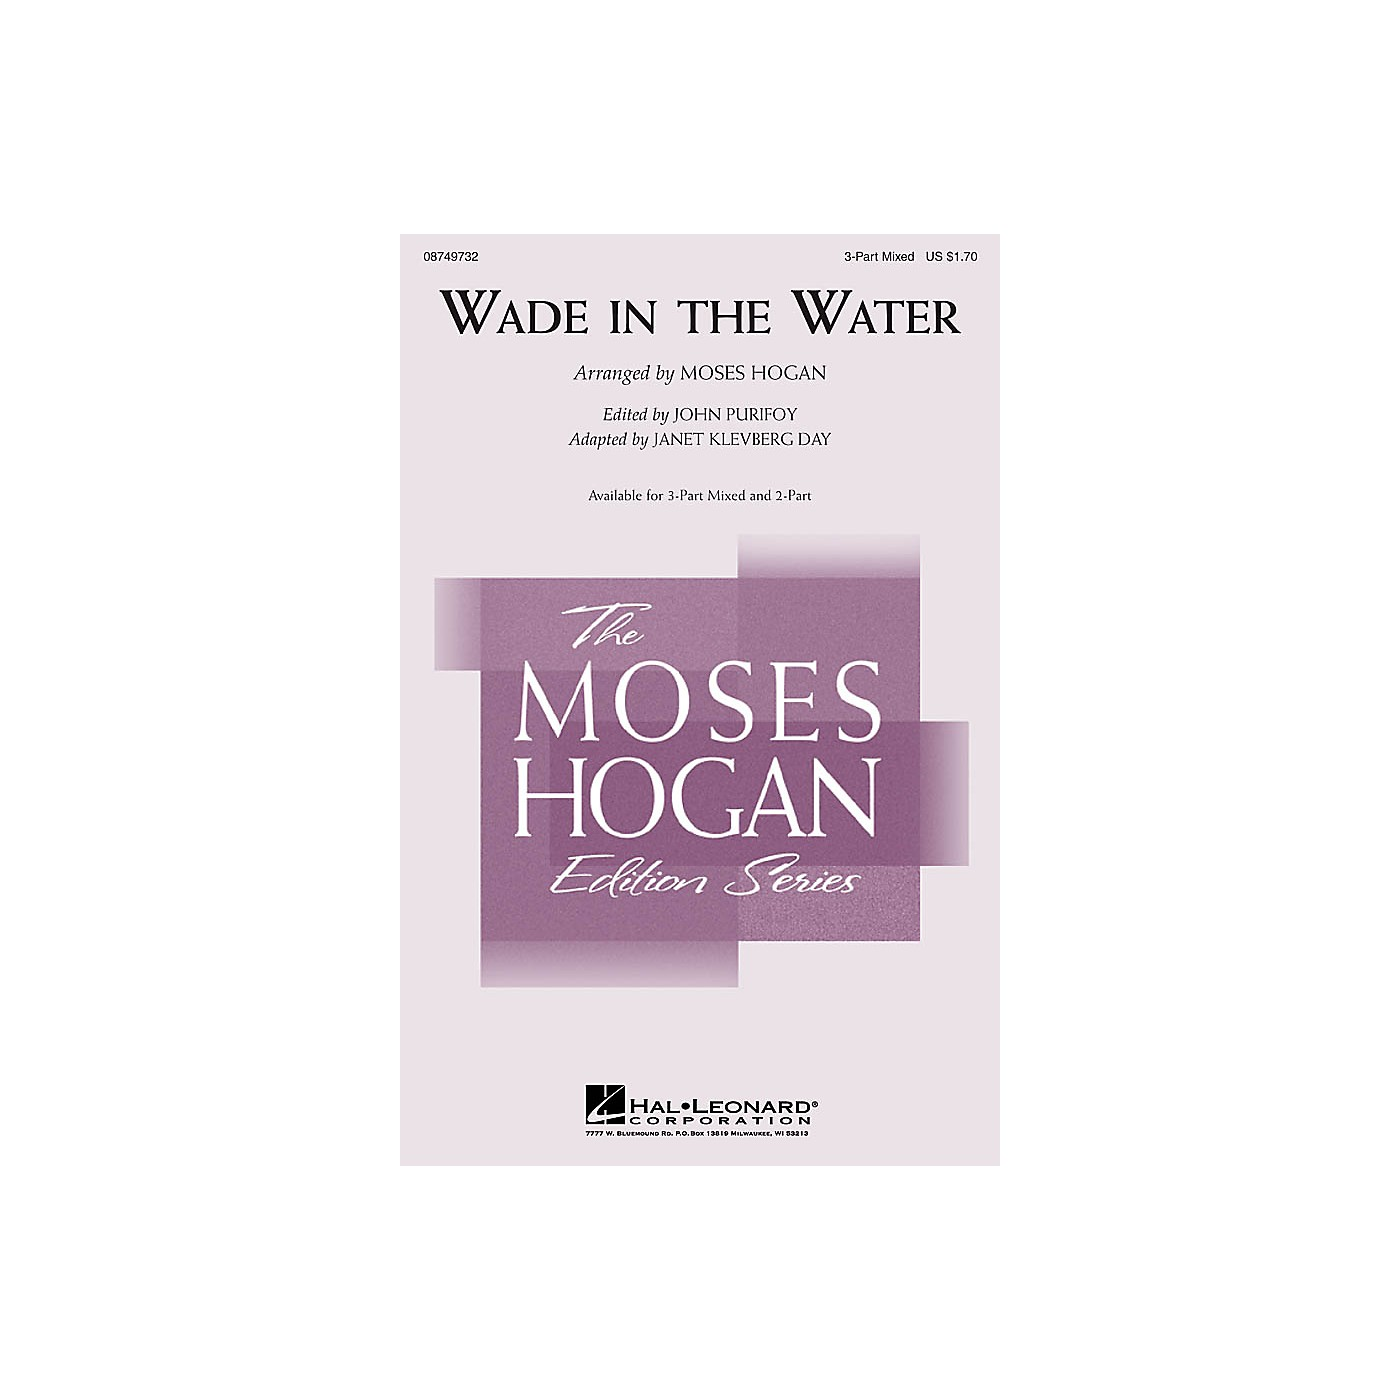 Hal Leonard Wade in the Water 3-Part Mixed arranged by Moses Hogan thumbnail